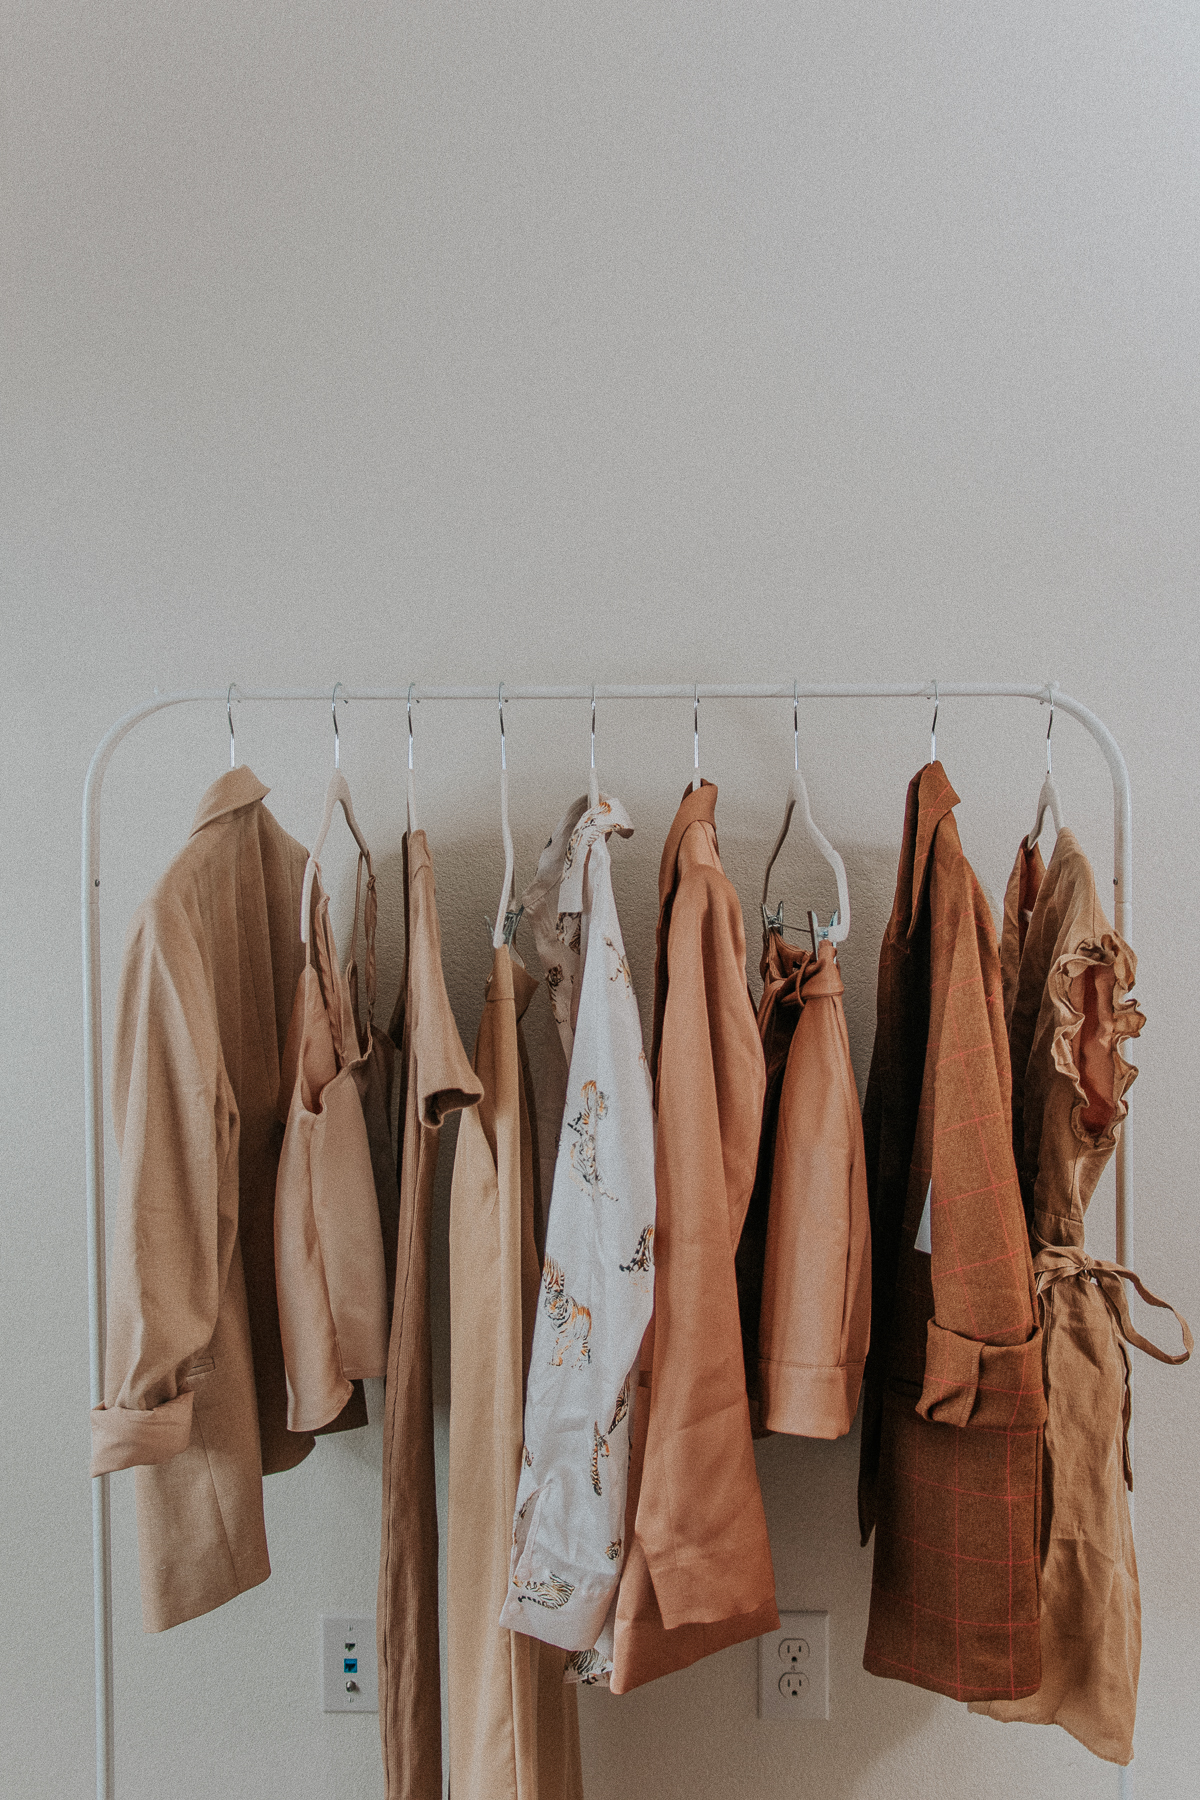 Clothing rack aesthetic ideas